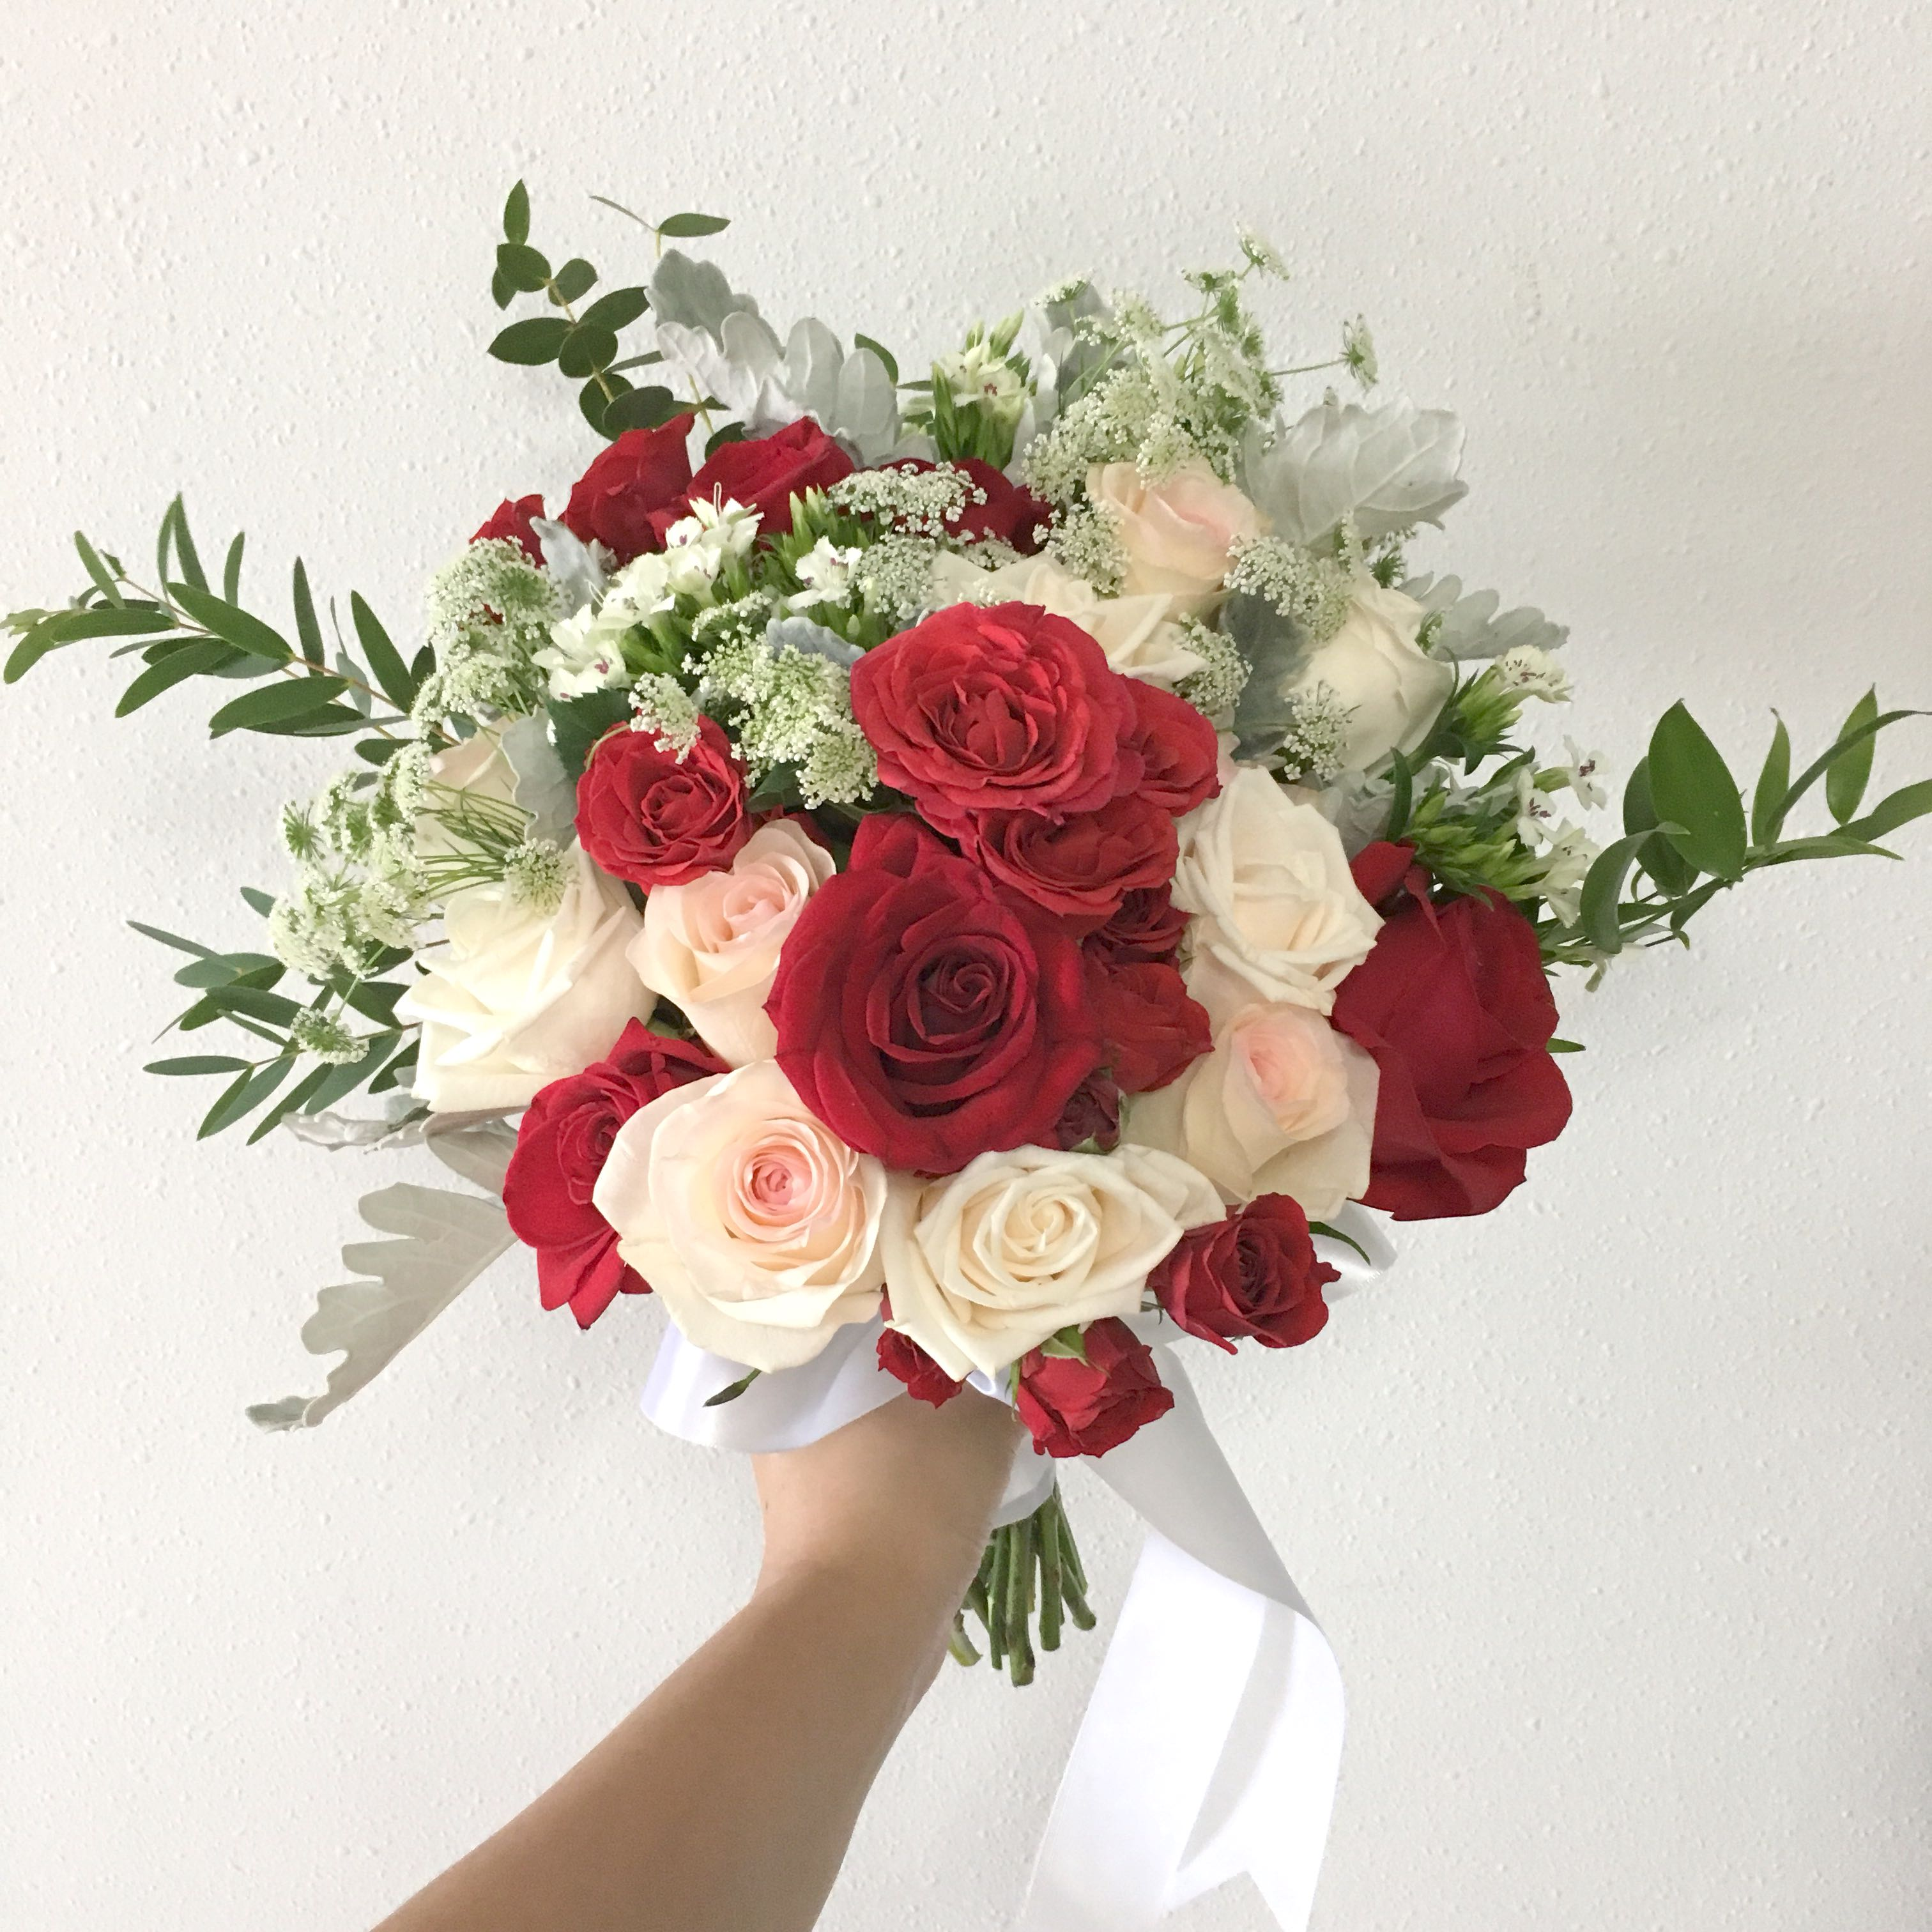 Red Rose Wedding Bouqet.Red Bridal Bouquet In Red Roses With Pastel Pink Wedding